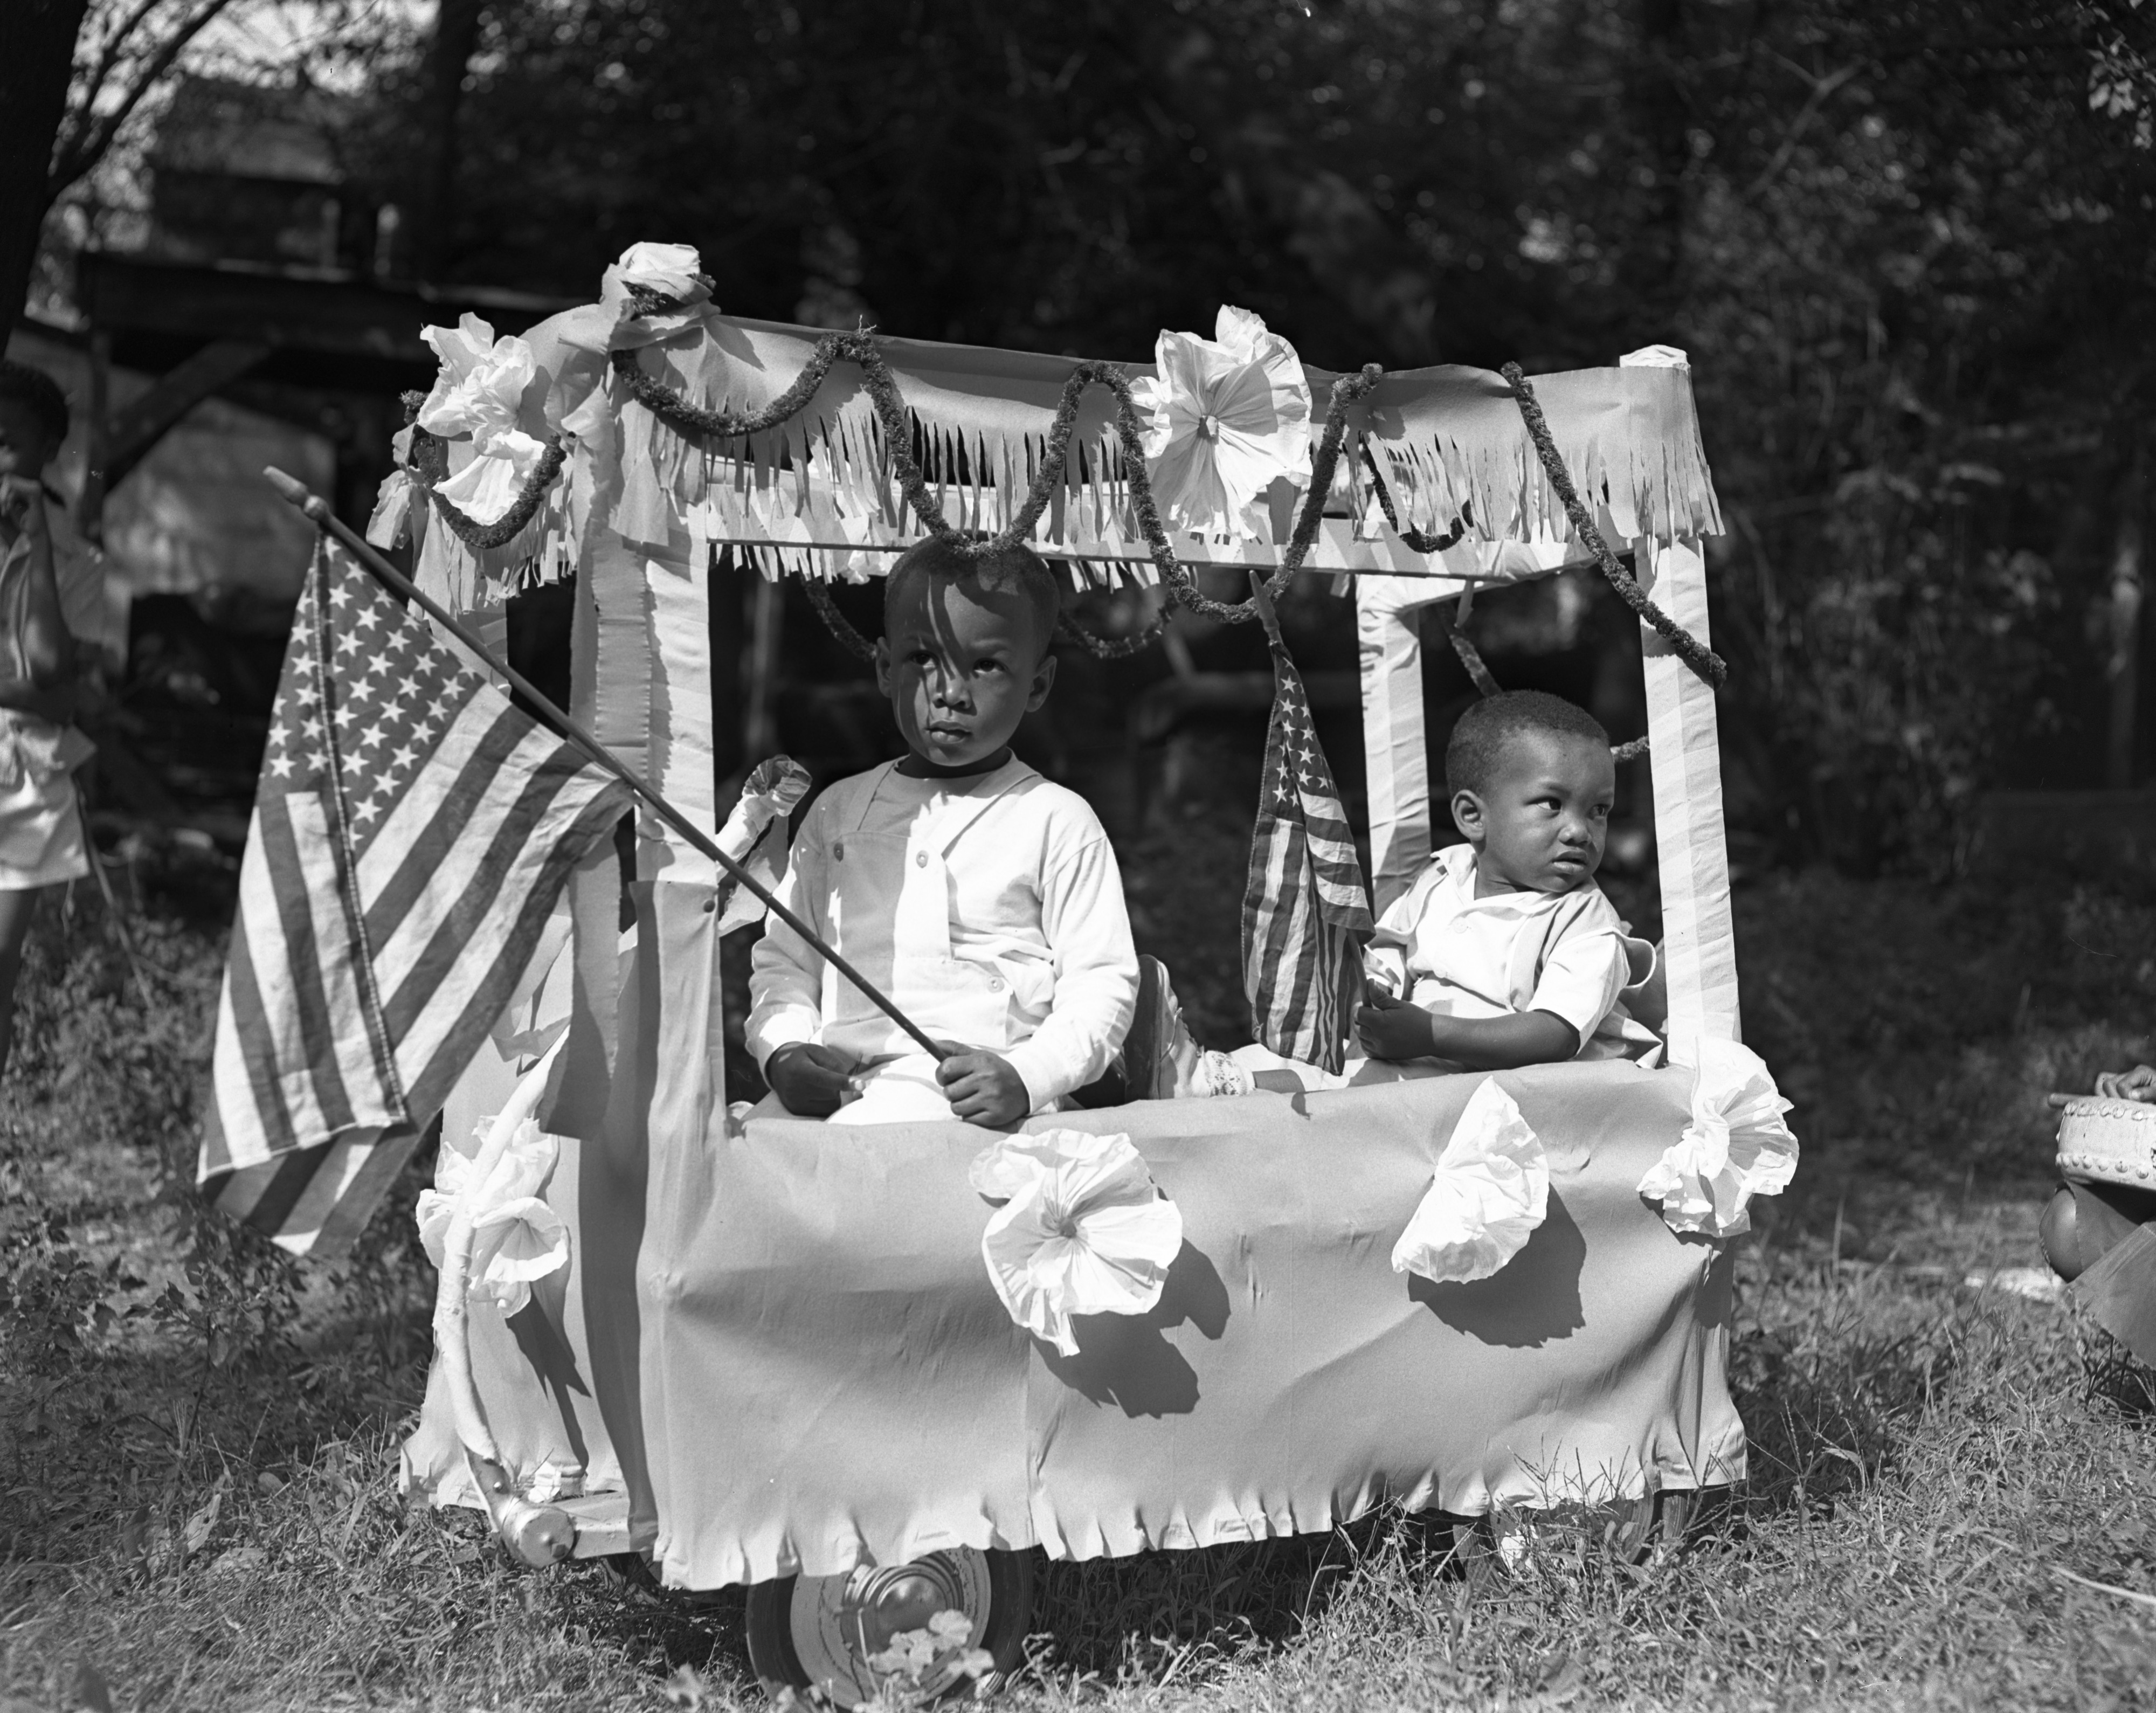 Eldridge & Zonnechris Askew In The Bethel A.M.E. Nursery School Parade, August 1949 image